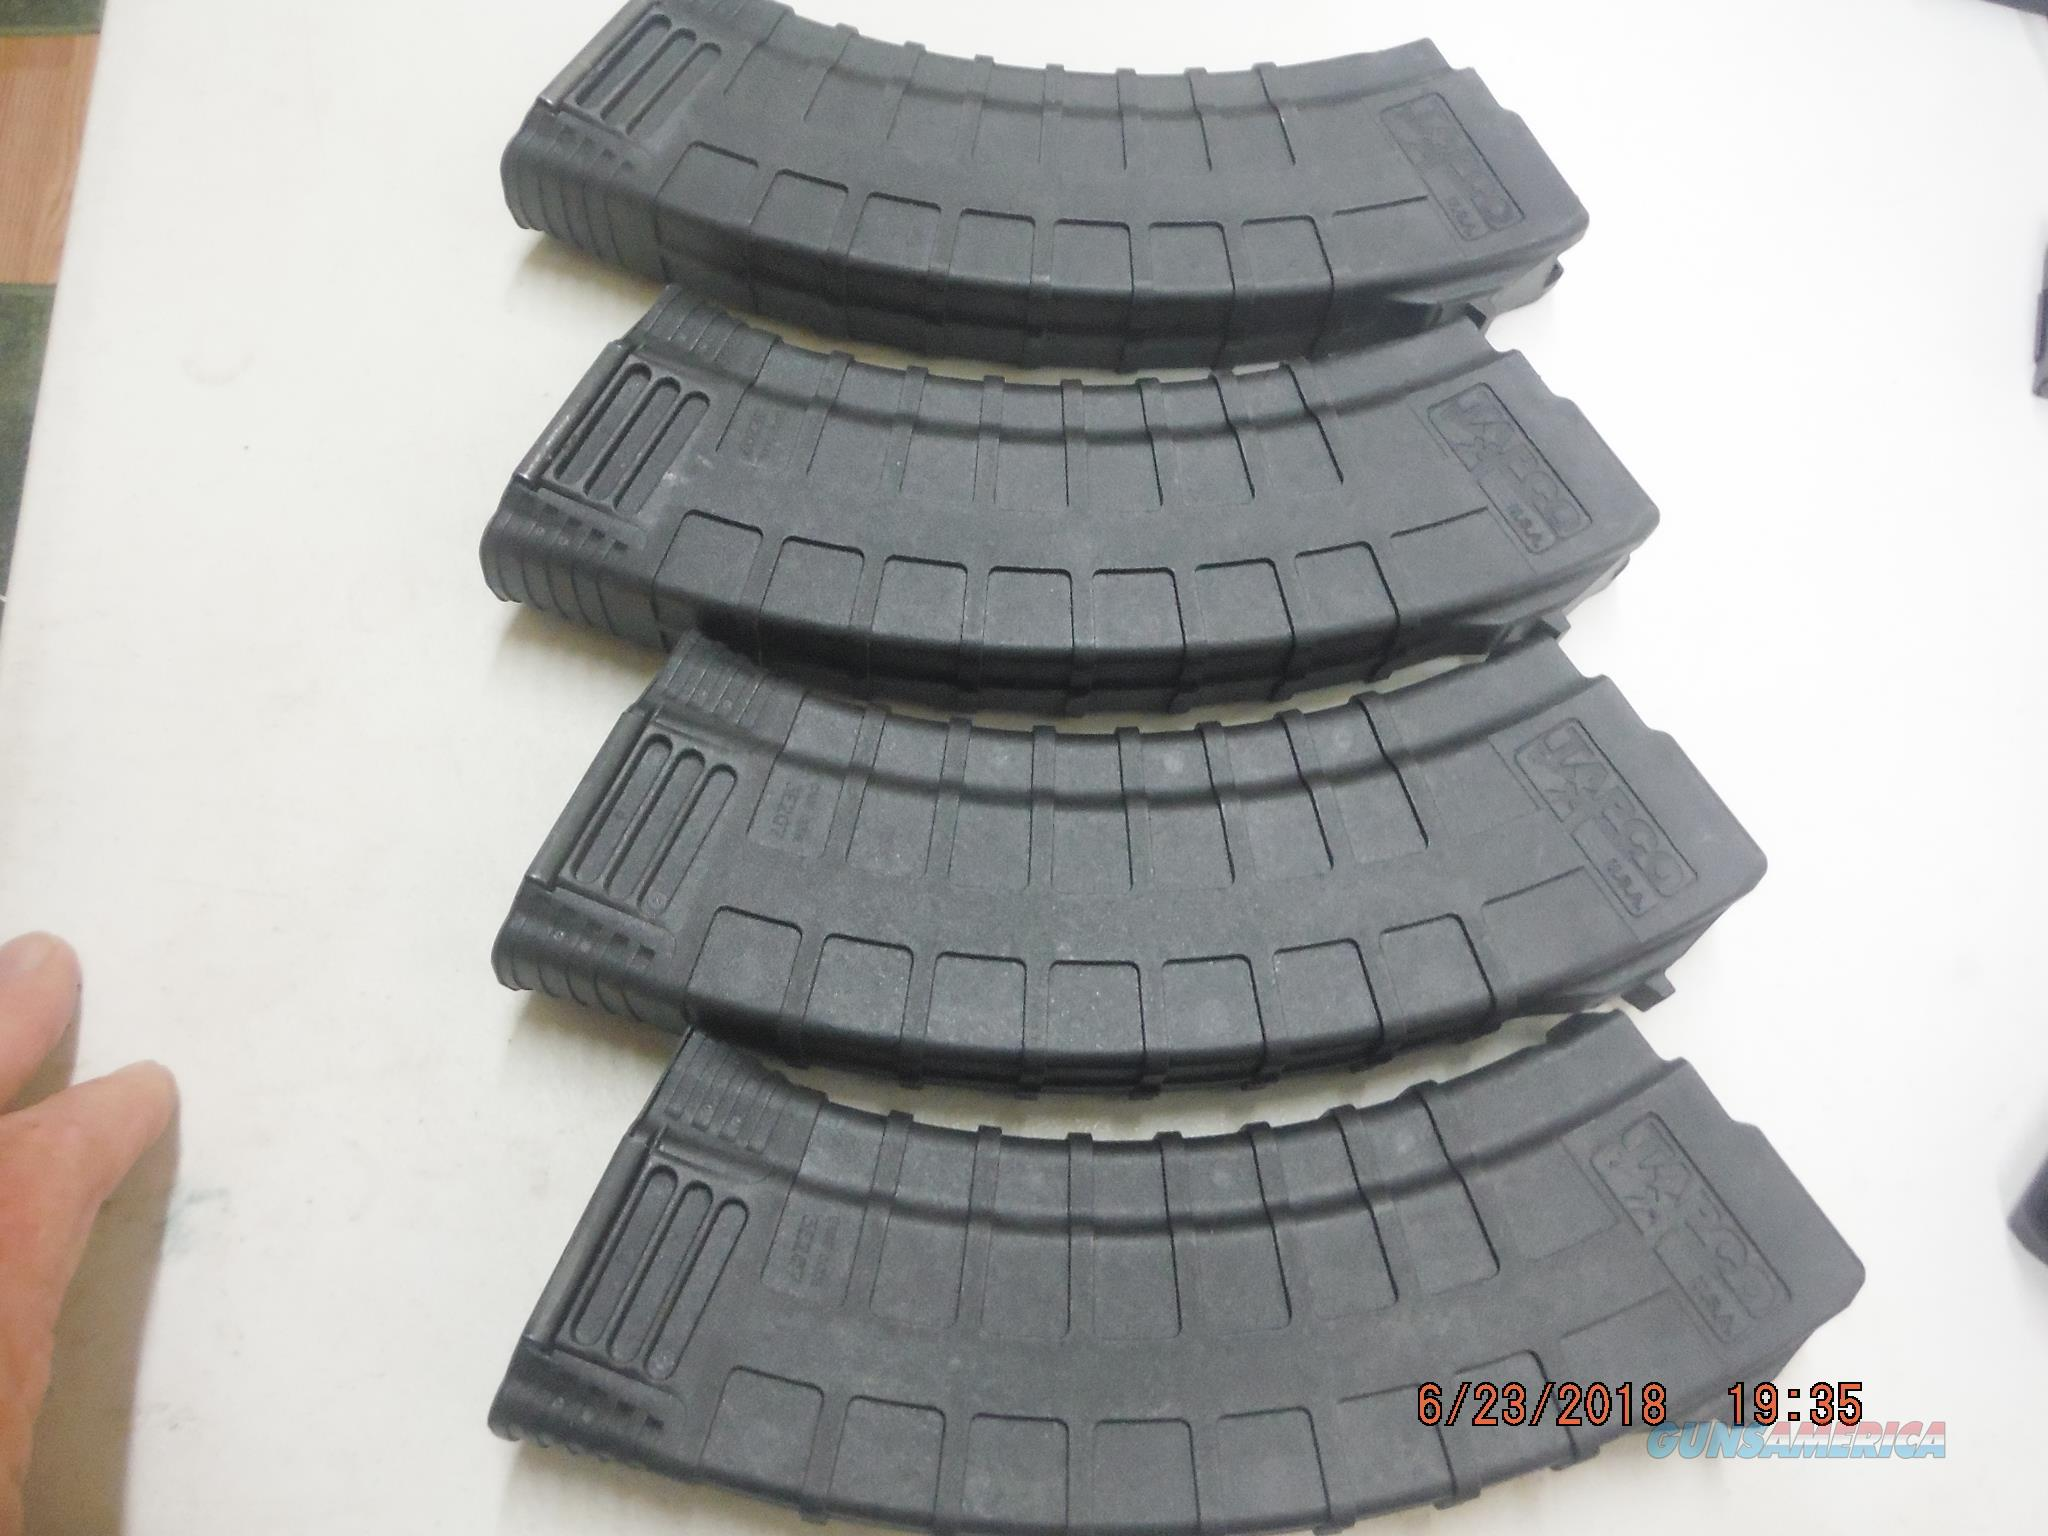 4 Tapco AK-47 / AK47 Magazine 7.62X39 30rd poly Mags AK47 New,  Non-Guns > Magazines & Clips > Rifle Magazines > AK Family